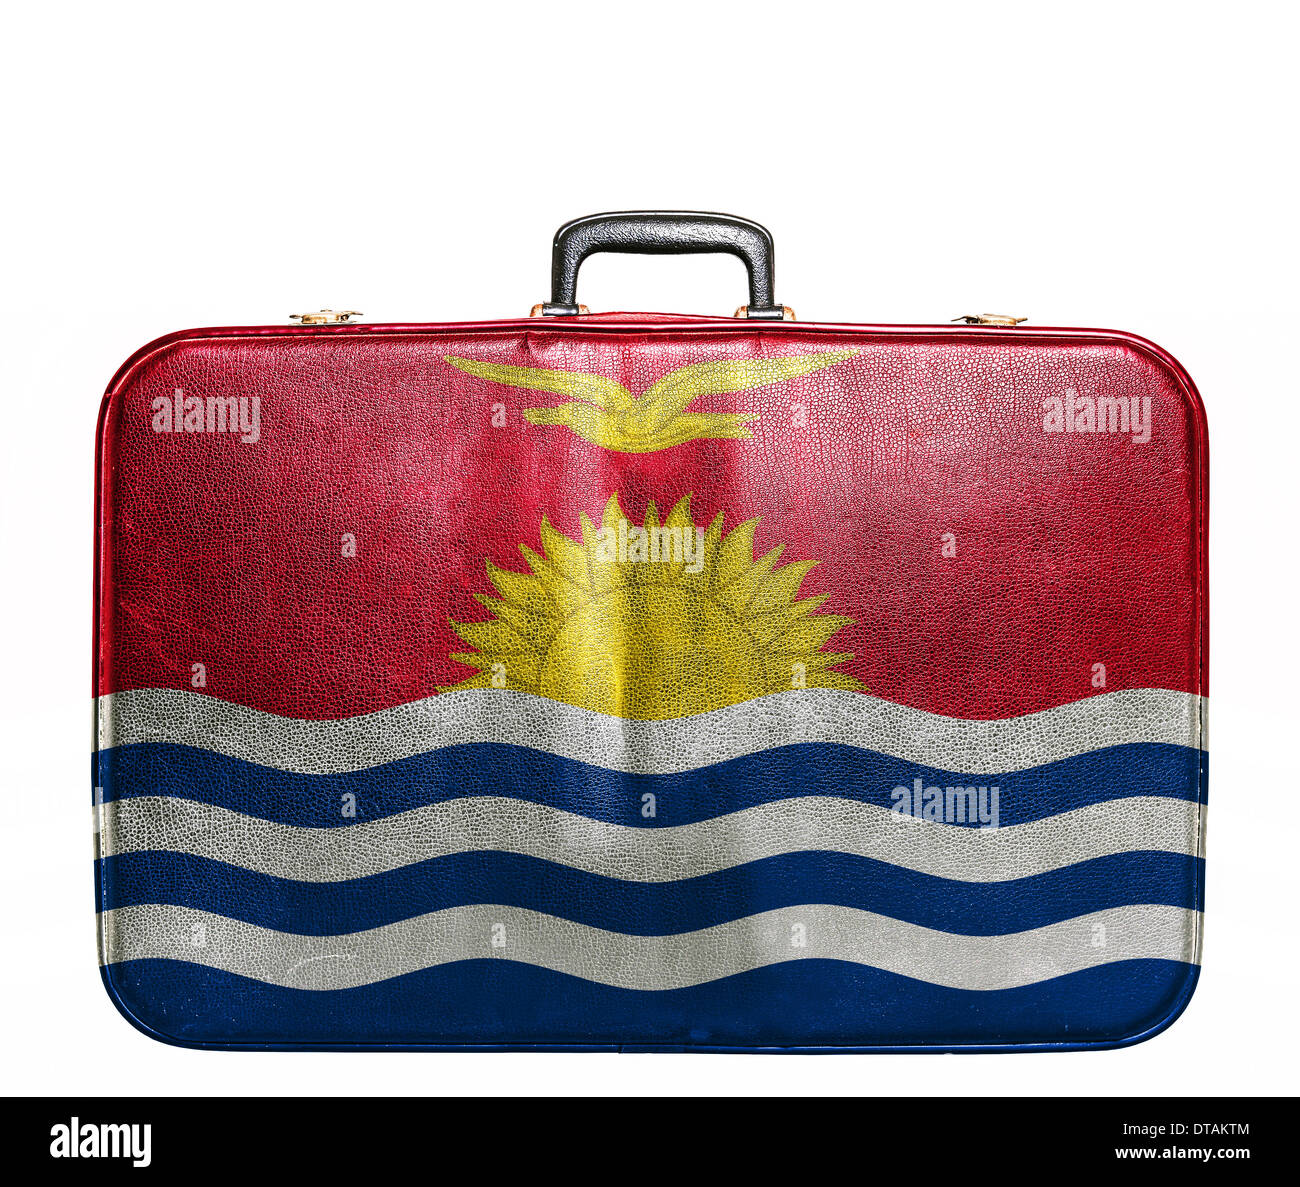 Vintage travel bag with flag of Kiribati - Stock Image